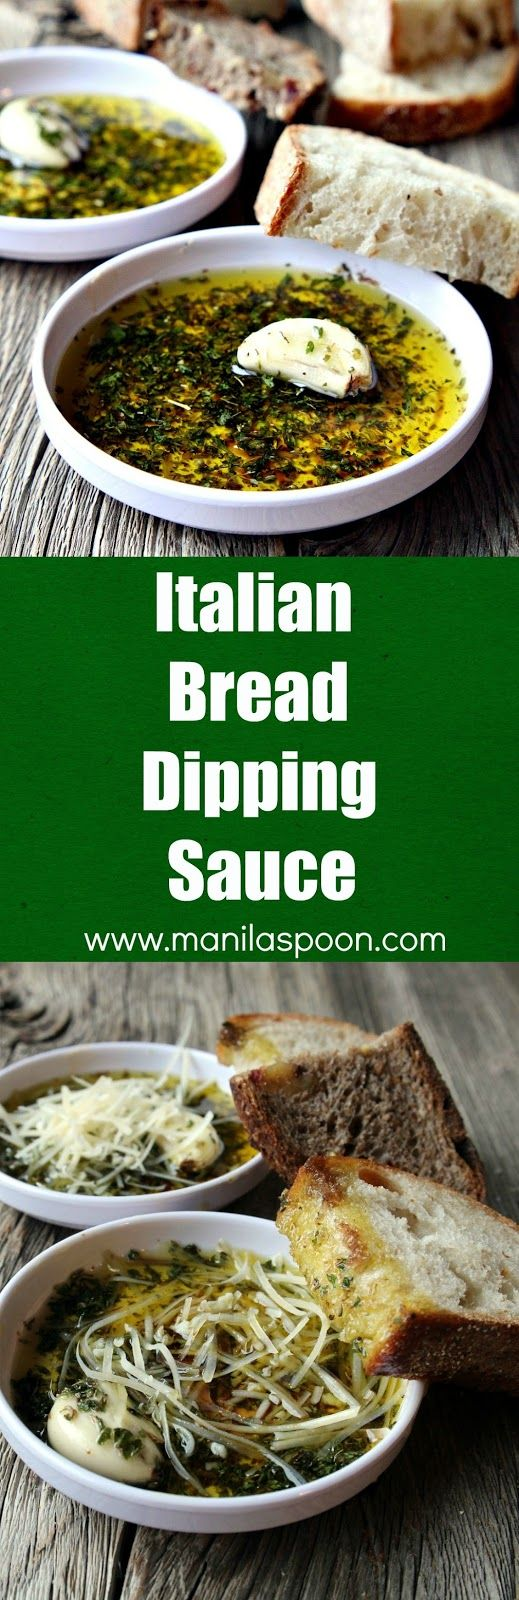 Restaurant-style olive oil dipping sauce with Italian herbs and balsamic vinegar perfect for dipping your favorite crusty bread. Mix it up with your favorite herbs and add a spicy kick to create your own flavor blend. Italian Bread Dipping Oil (Sauce) - Appetizer, Game Day, holiday| manilaspoon.com